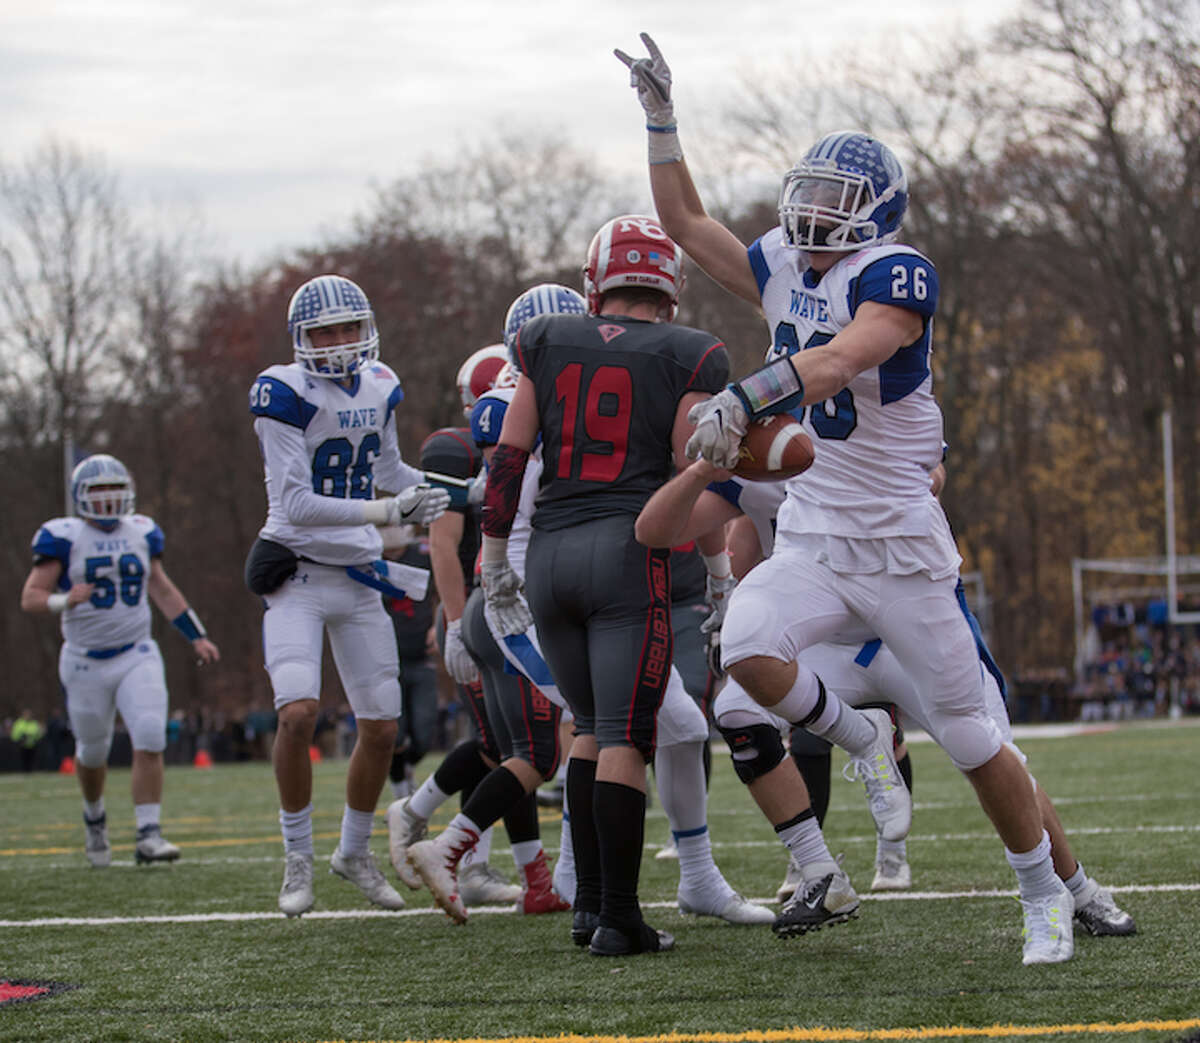 Nick Green with the touchdown at NC in 2016. Courtesy Darien Athletic Foundation